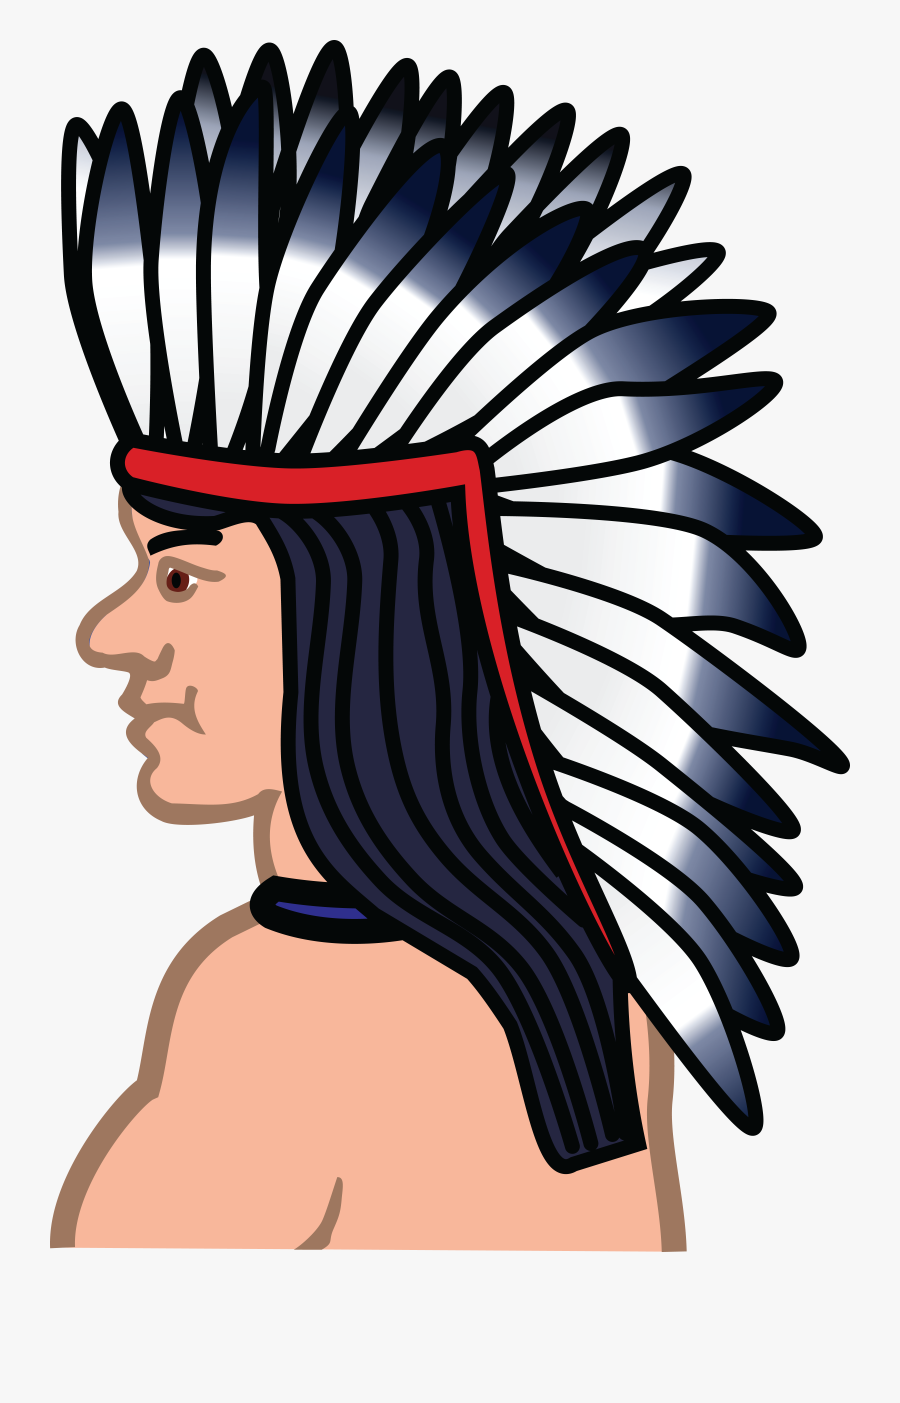 Transparent Indian Clipart - Native American Hair Clip Art, Transparent Clipart